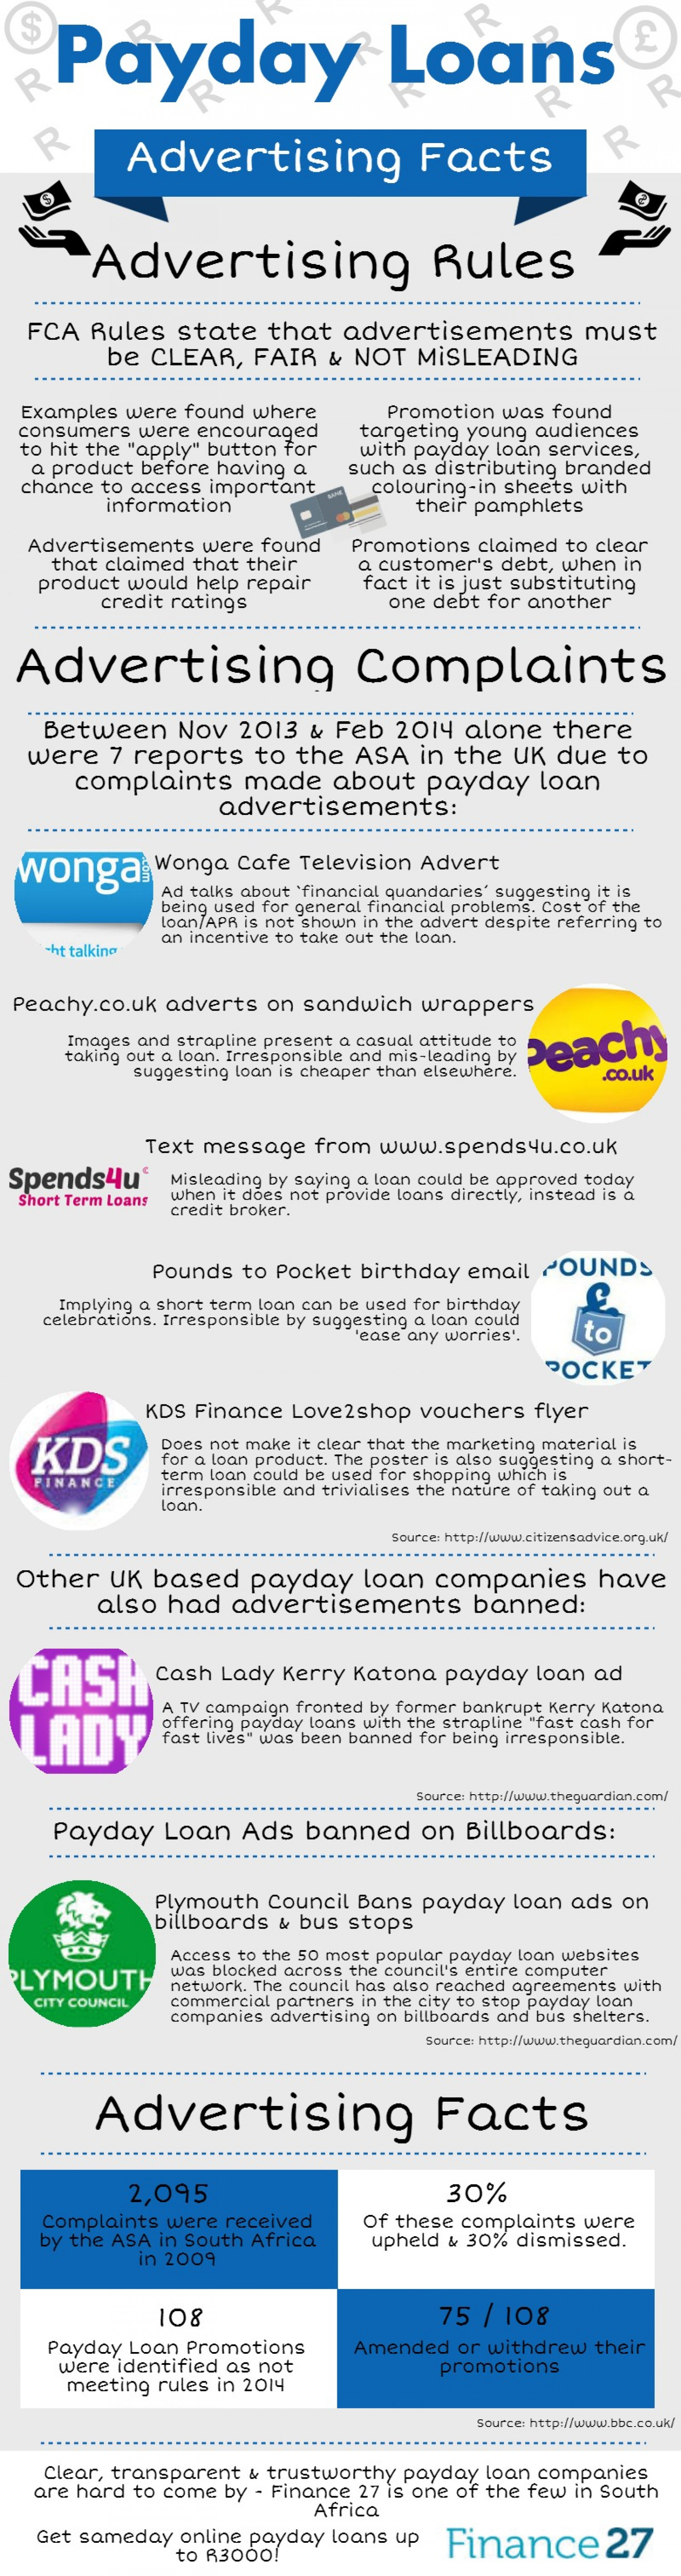 Payday Loan Advertising Facts Infographic